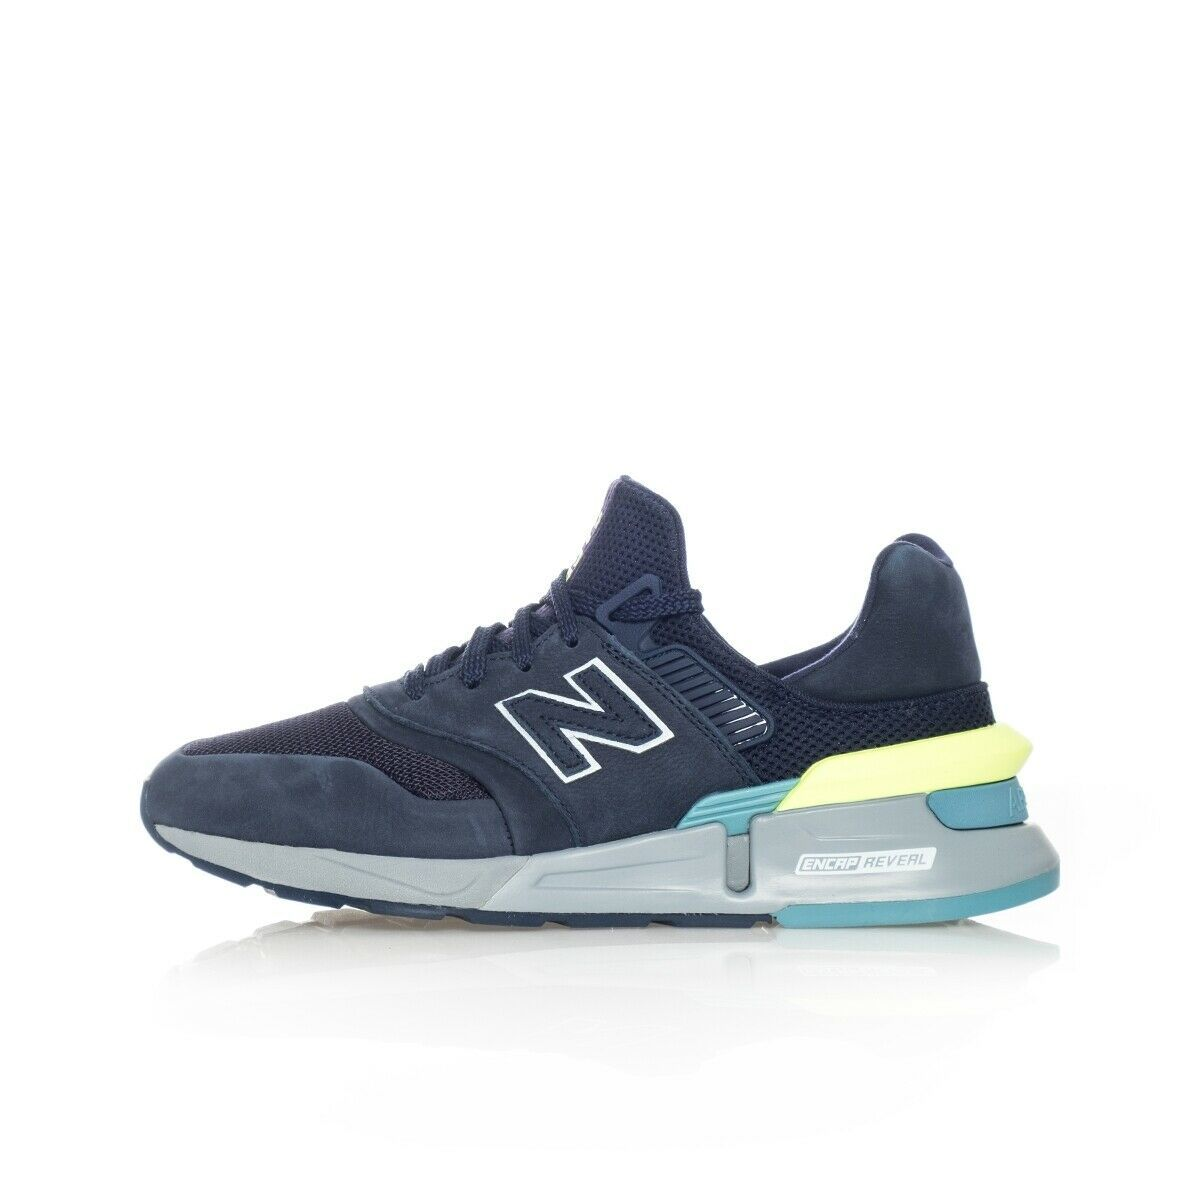 MAN NEW BALANCE 997 LIFESTYLE MS997HF SNEAKERS MAN CASUAL SHOES SNKRSROOM BLUE